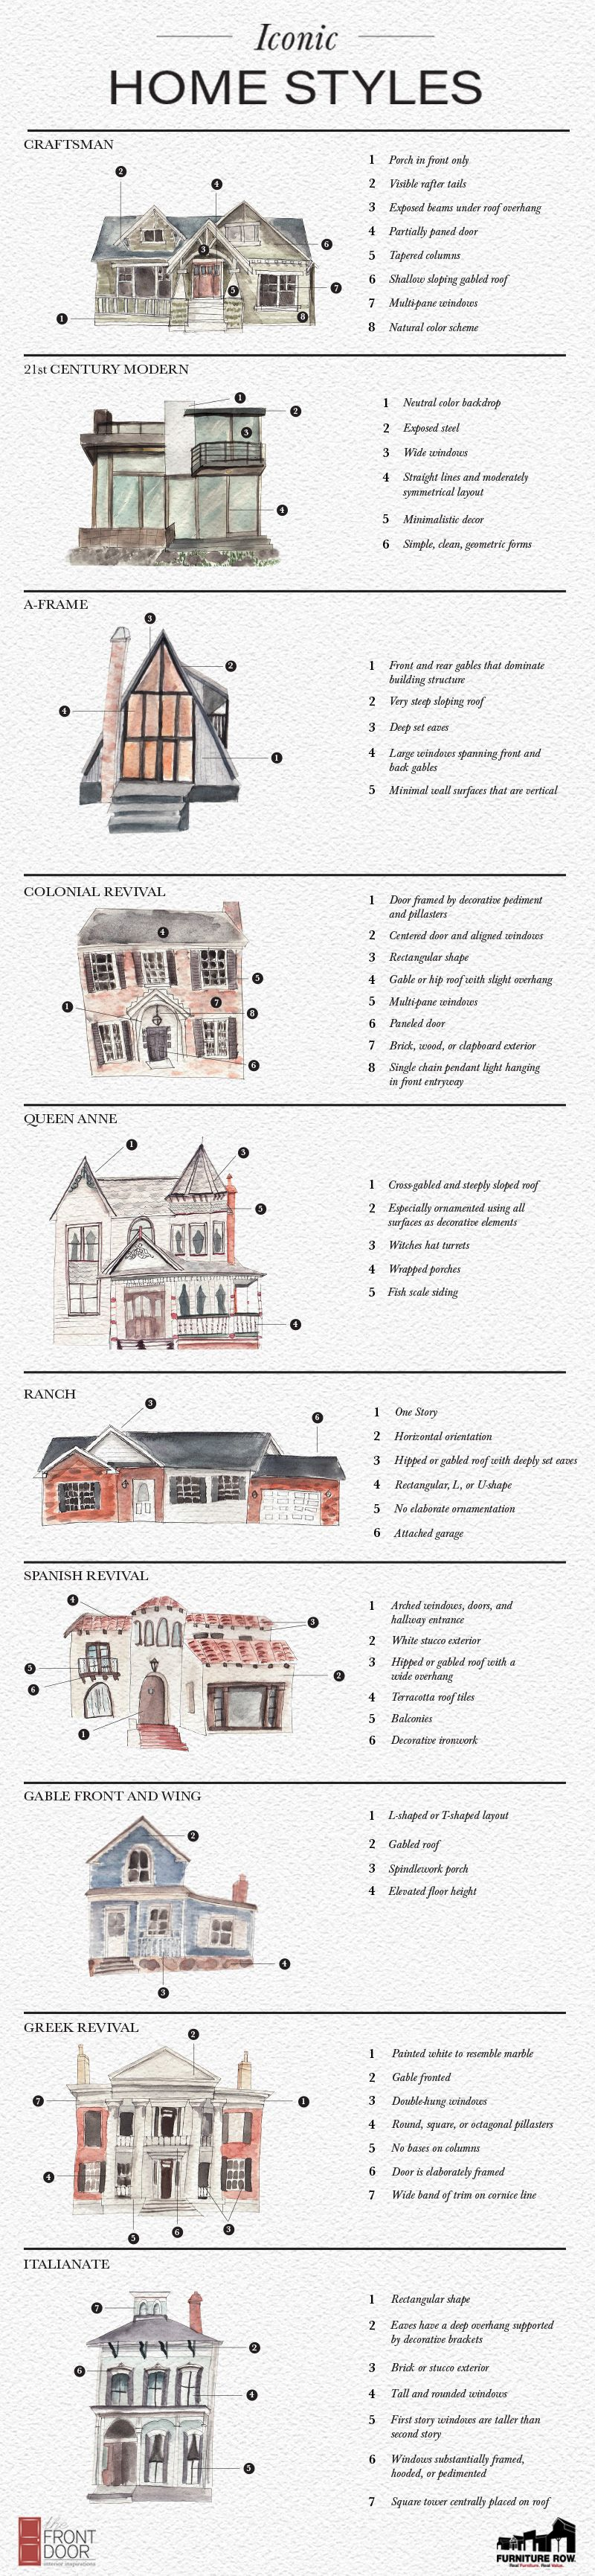 Iconic Home Styles | Infographic, House and Architecture